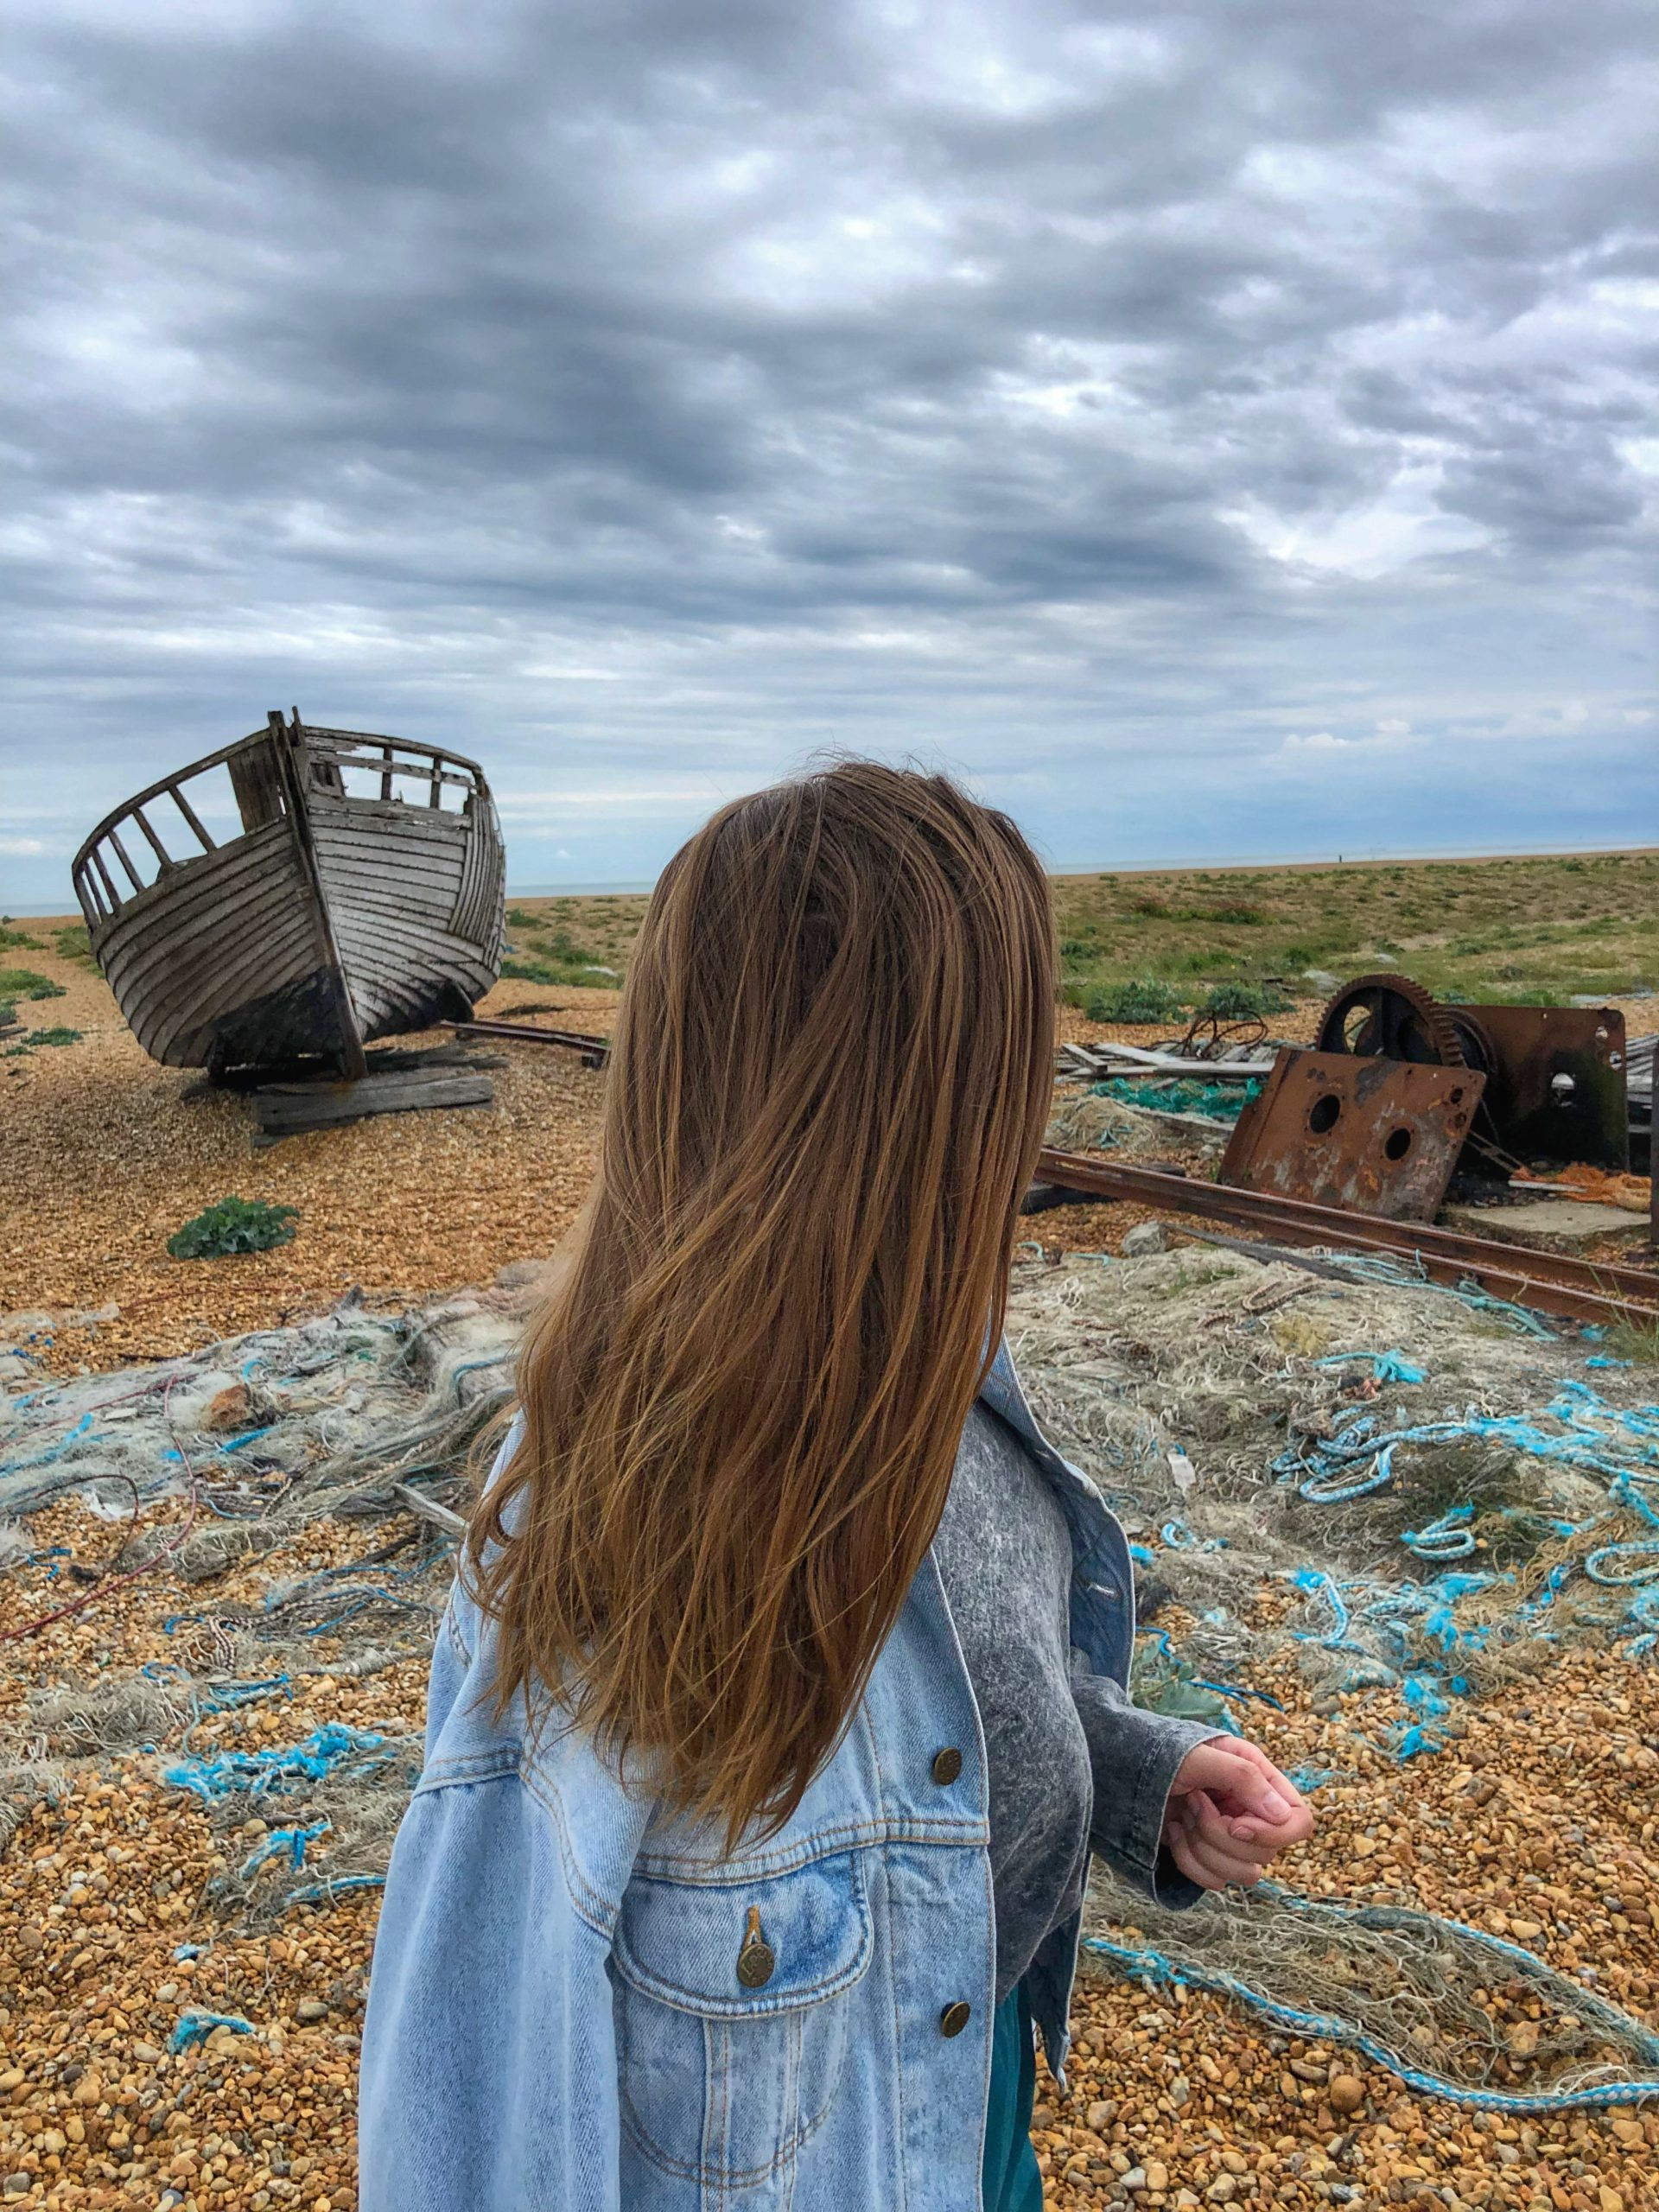 Unusual Things To Do In The UK: Dungeness